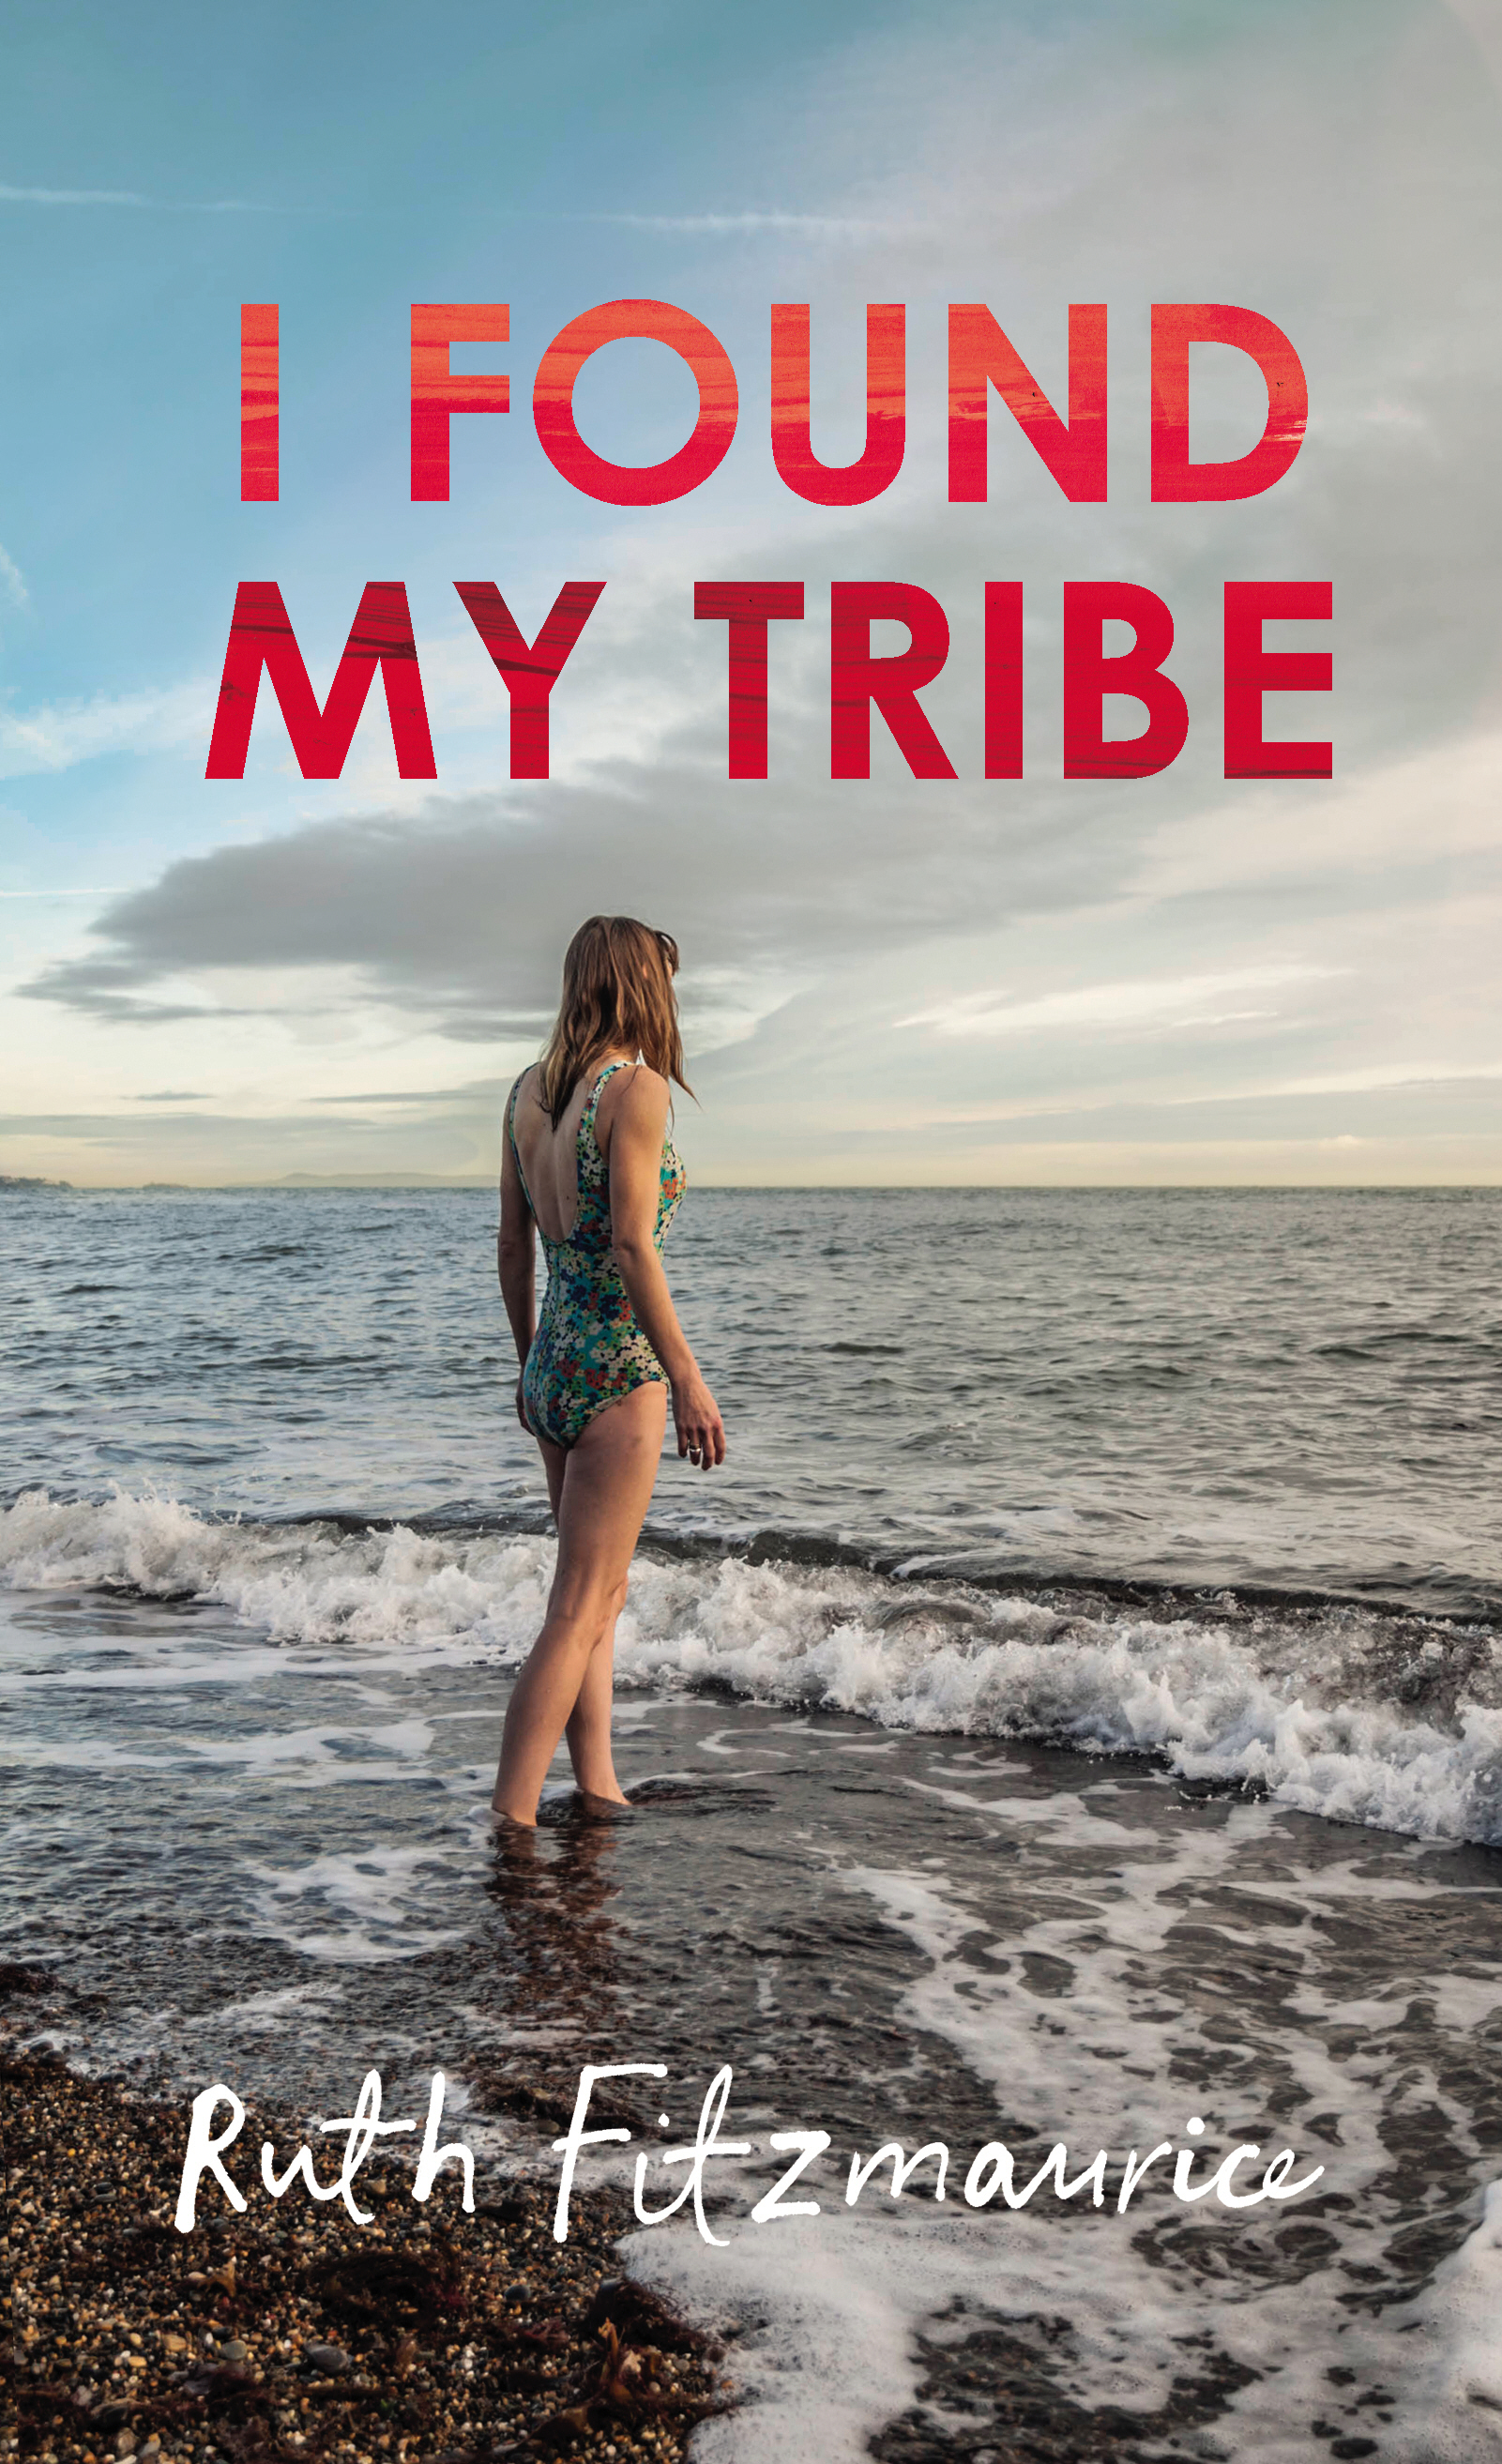 I Found My Tribe by Ruth Fitzmaurice